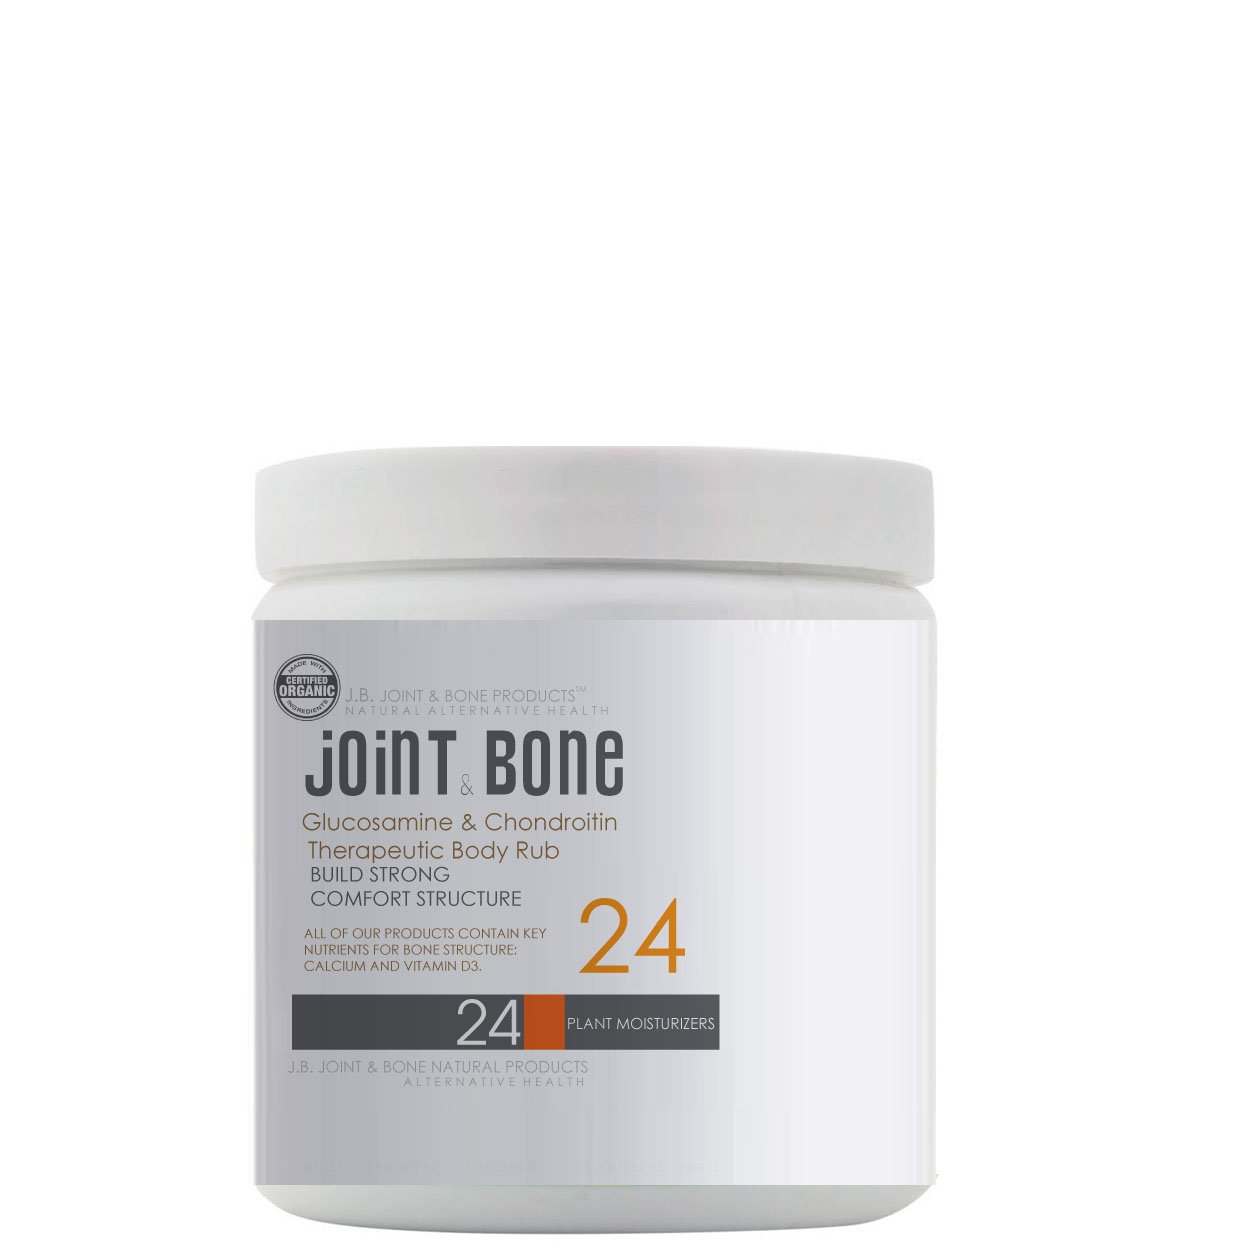 J.B. Glucosamine & Chondroitin  Therapeutic Body Rub